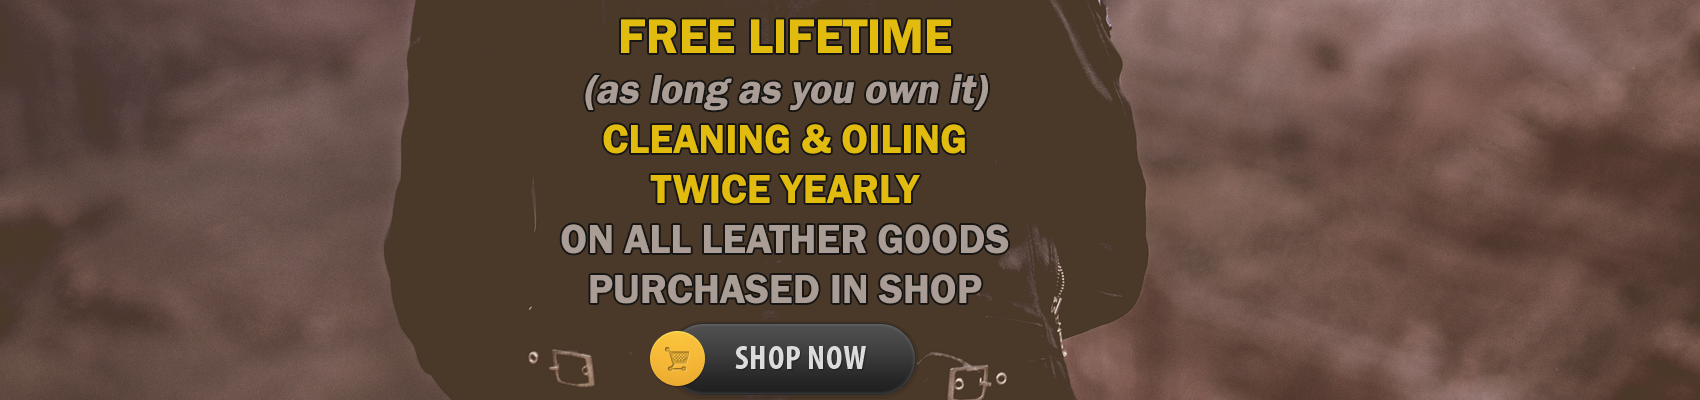 Lifetime cleaning and oiling twice yearly with any leather purchase